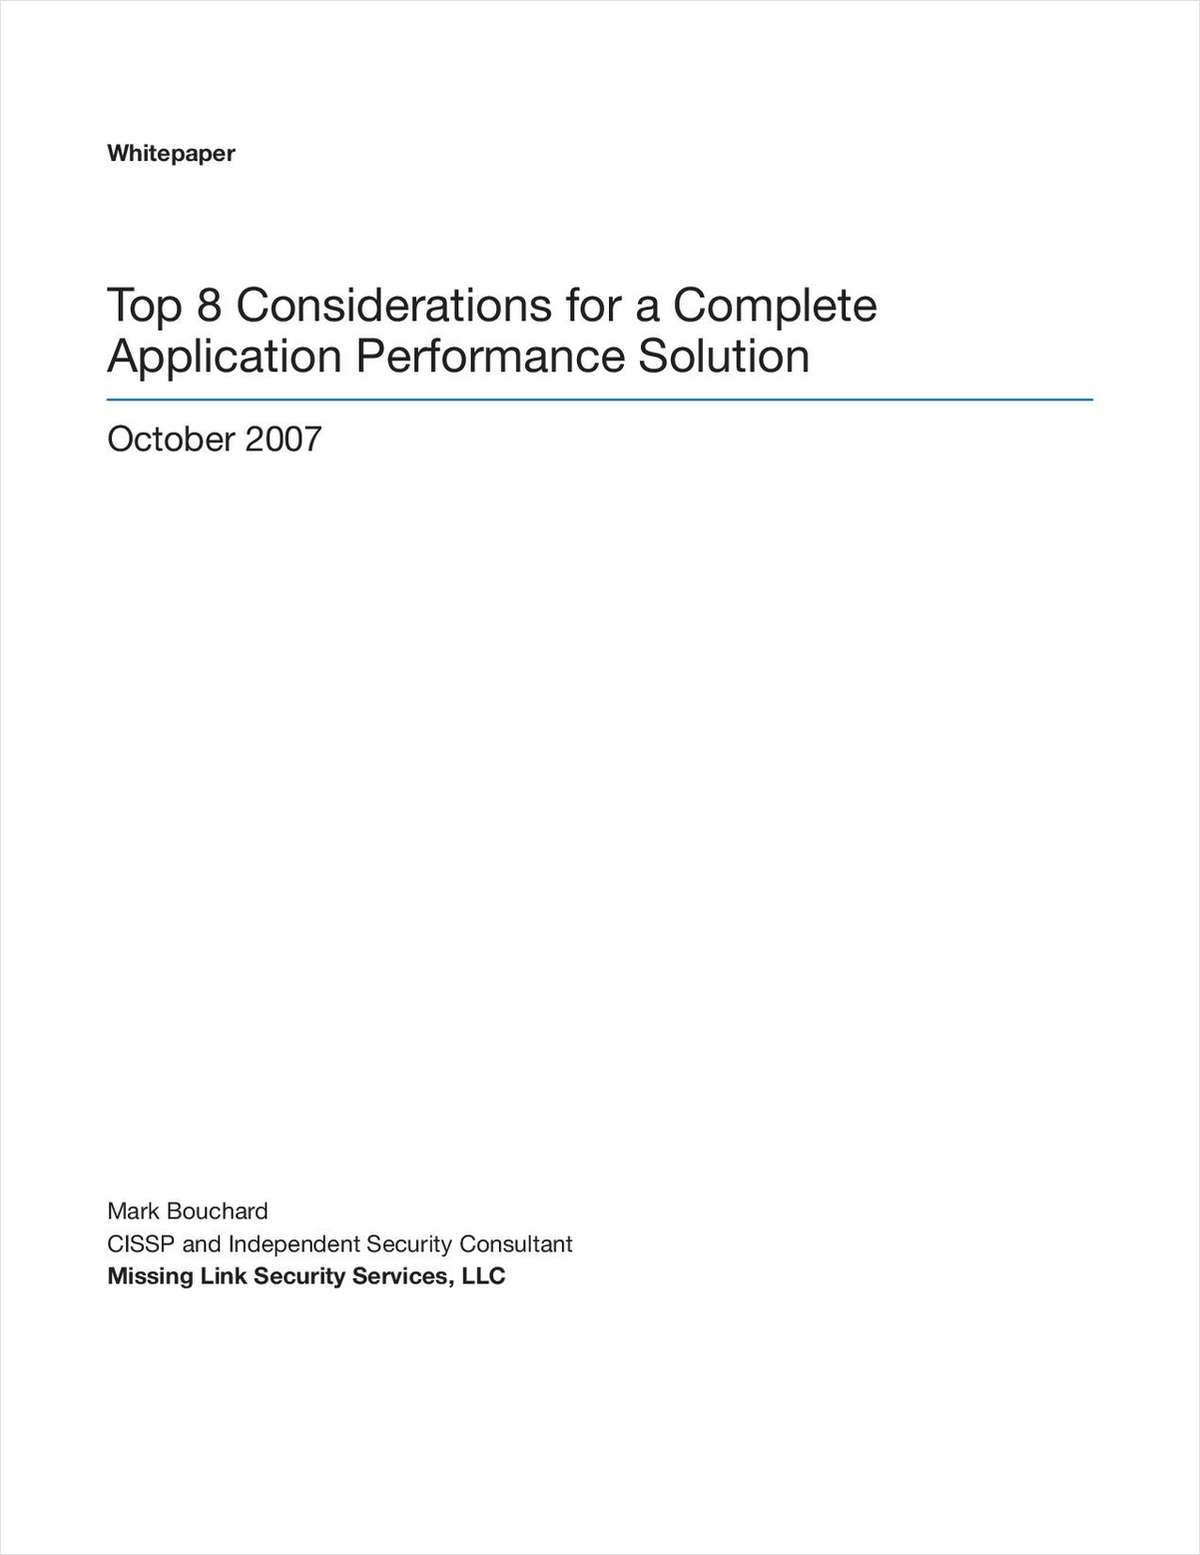 8 Considerations for a Complete Application Performance Solution